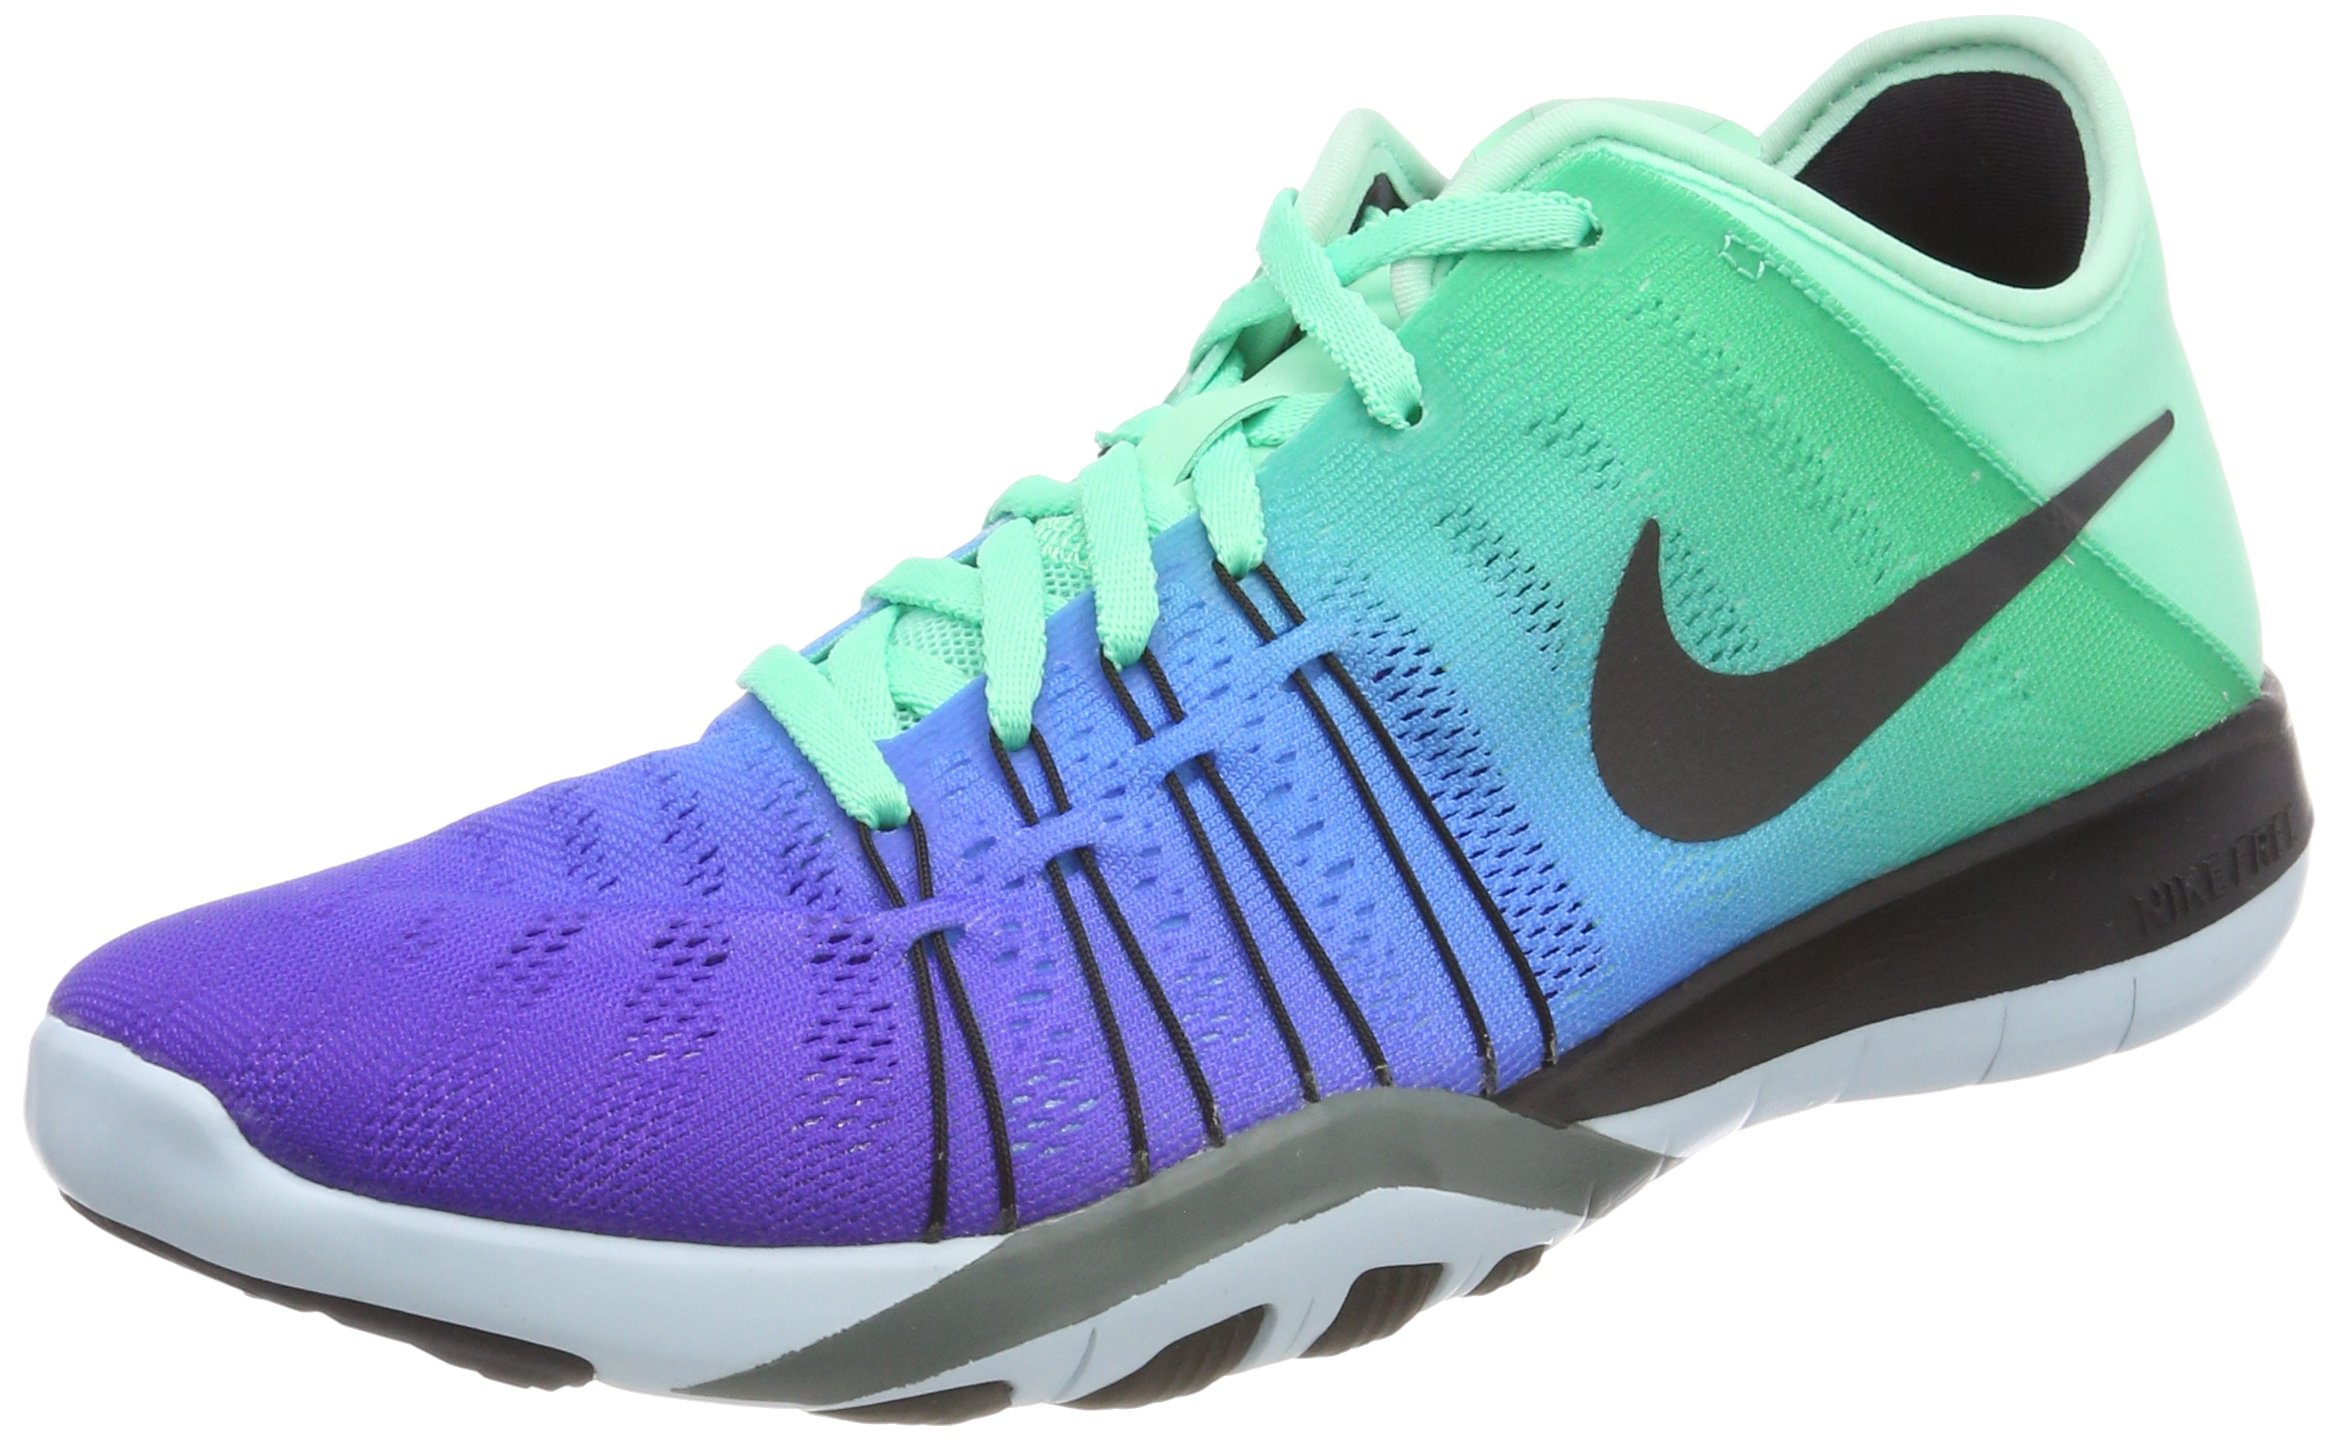 low priced a53ff 309fc Galleon - Nike Women s Free TR 6 Spectrum Training Shoe Green  Glow Black Glacier Blue Hasta Size 8.5 M US